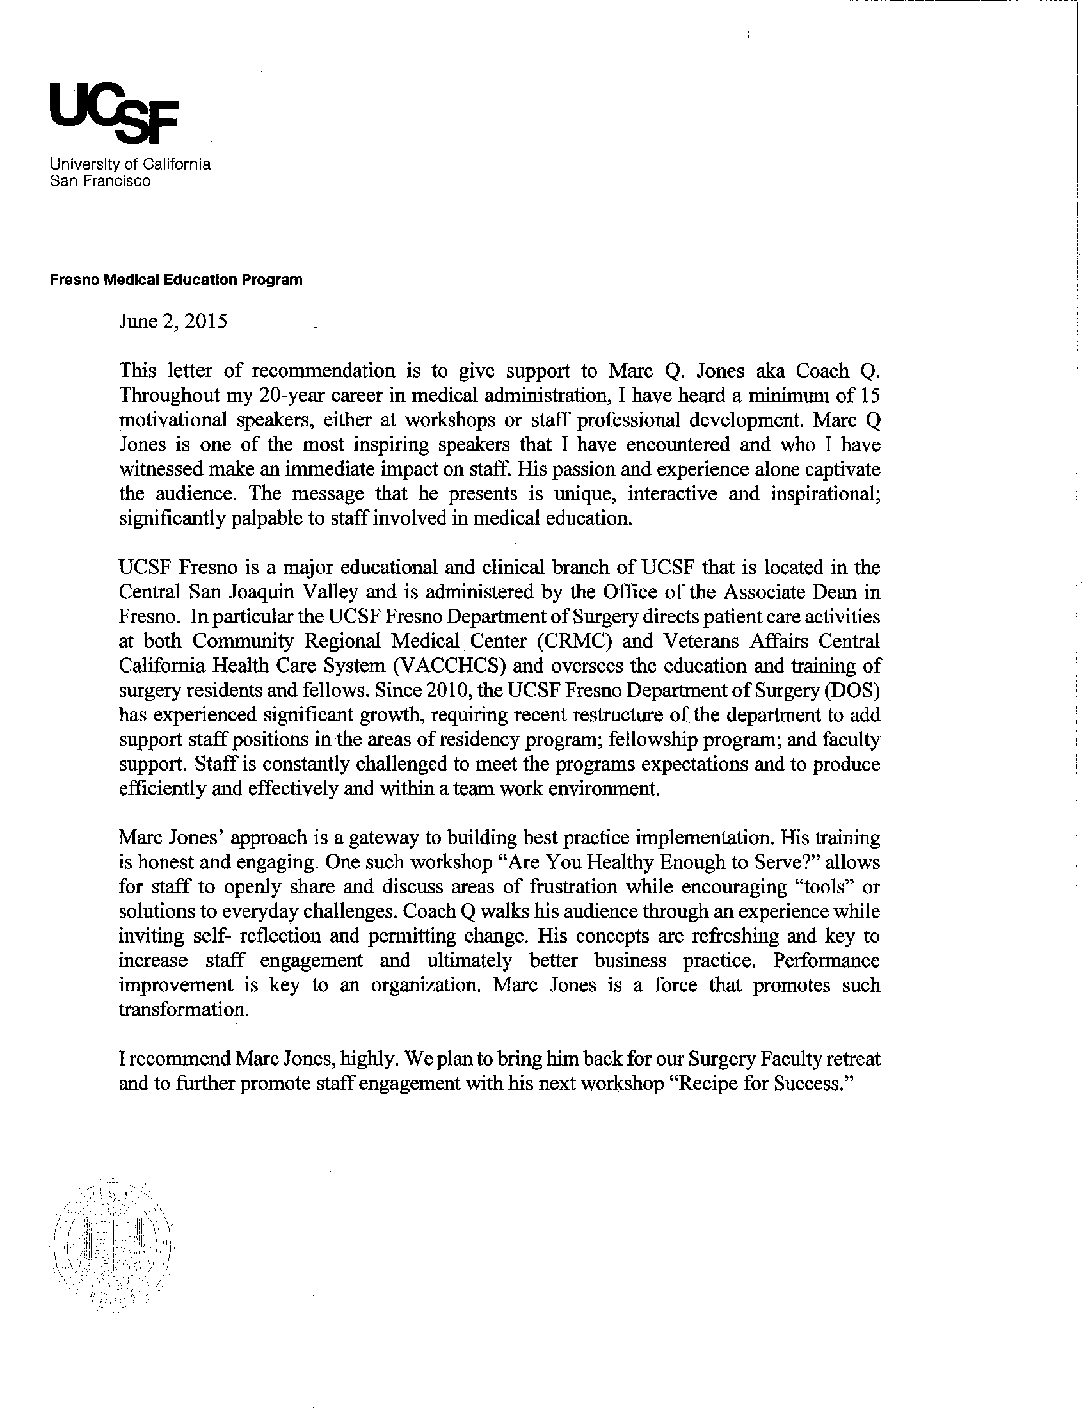 university of san francisco recommendation letter